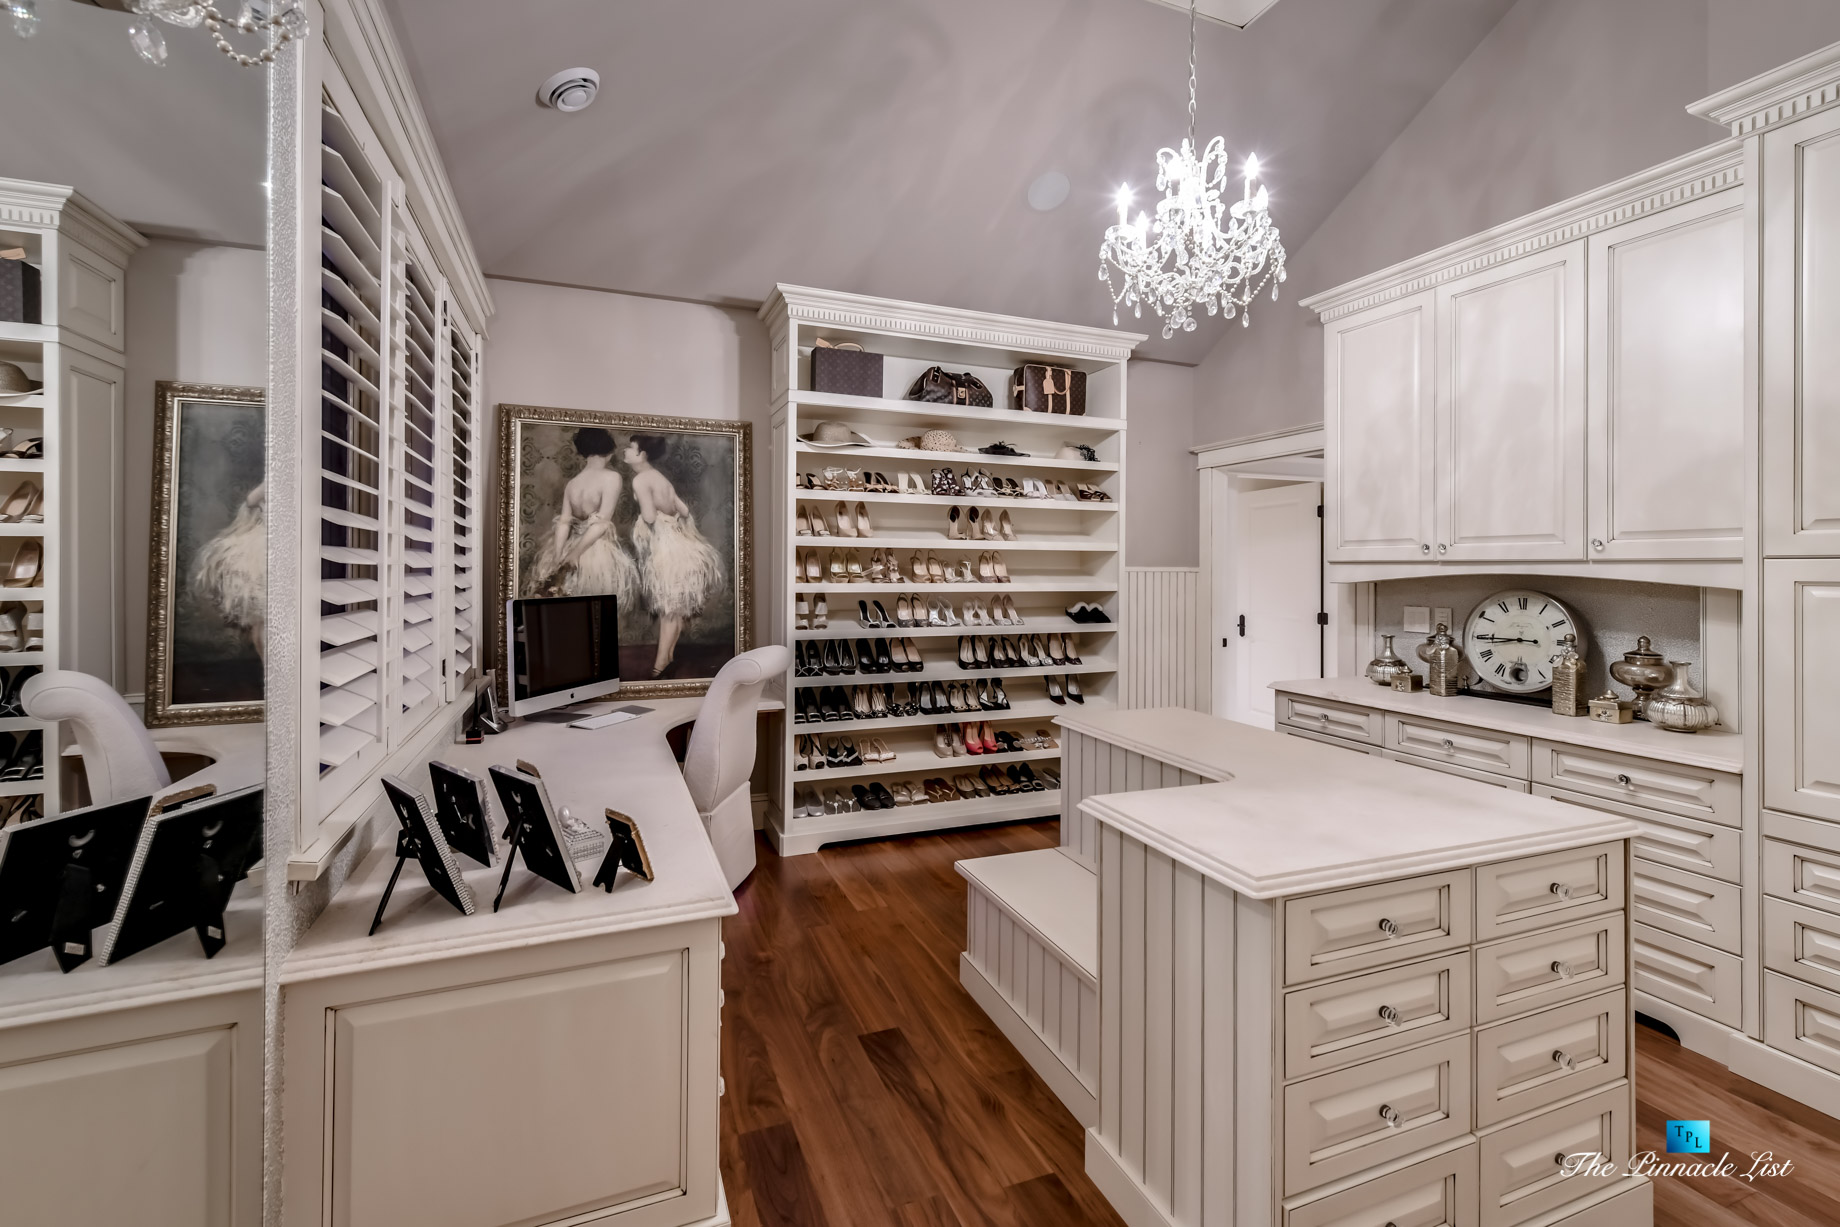 3053 Anmore Creek Way, Anmore, BC, Canada - Master Walk In Closet for Her - Luxury Real Estate - Greater Vancouver Home